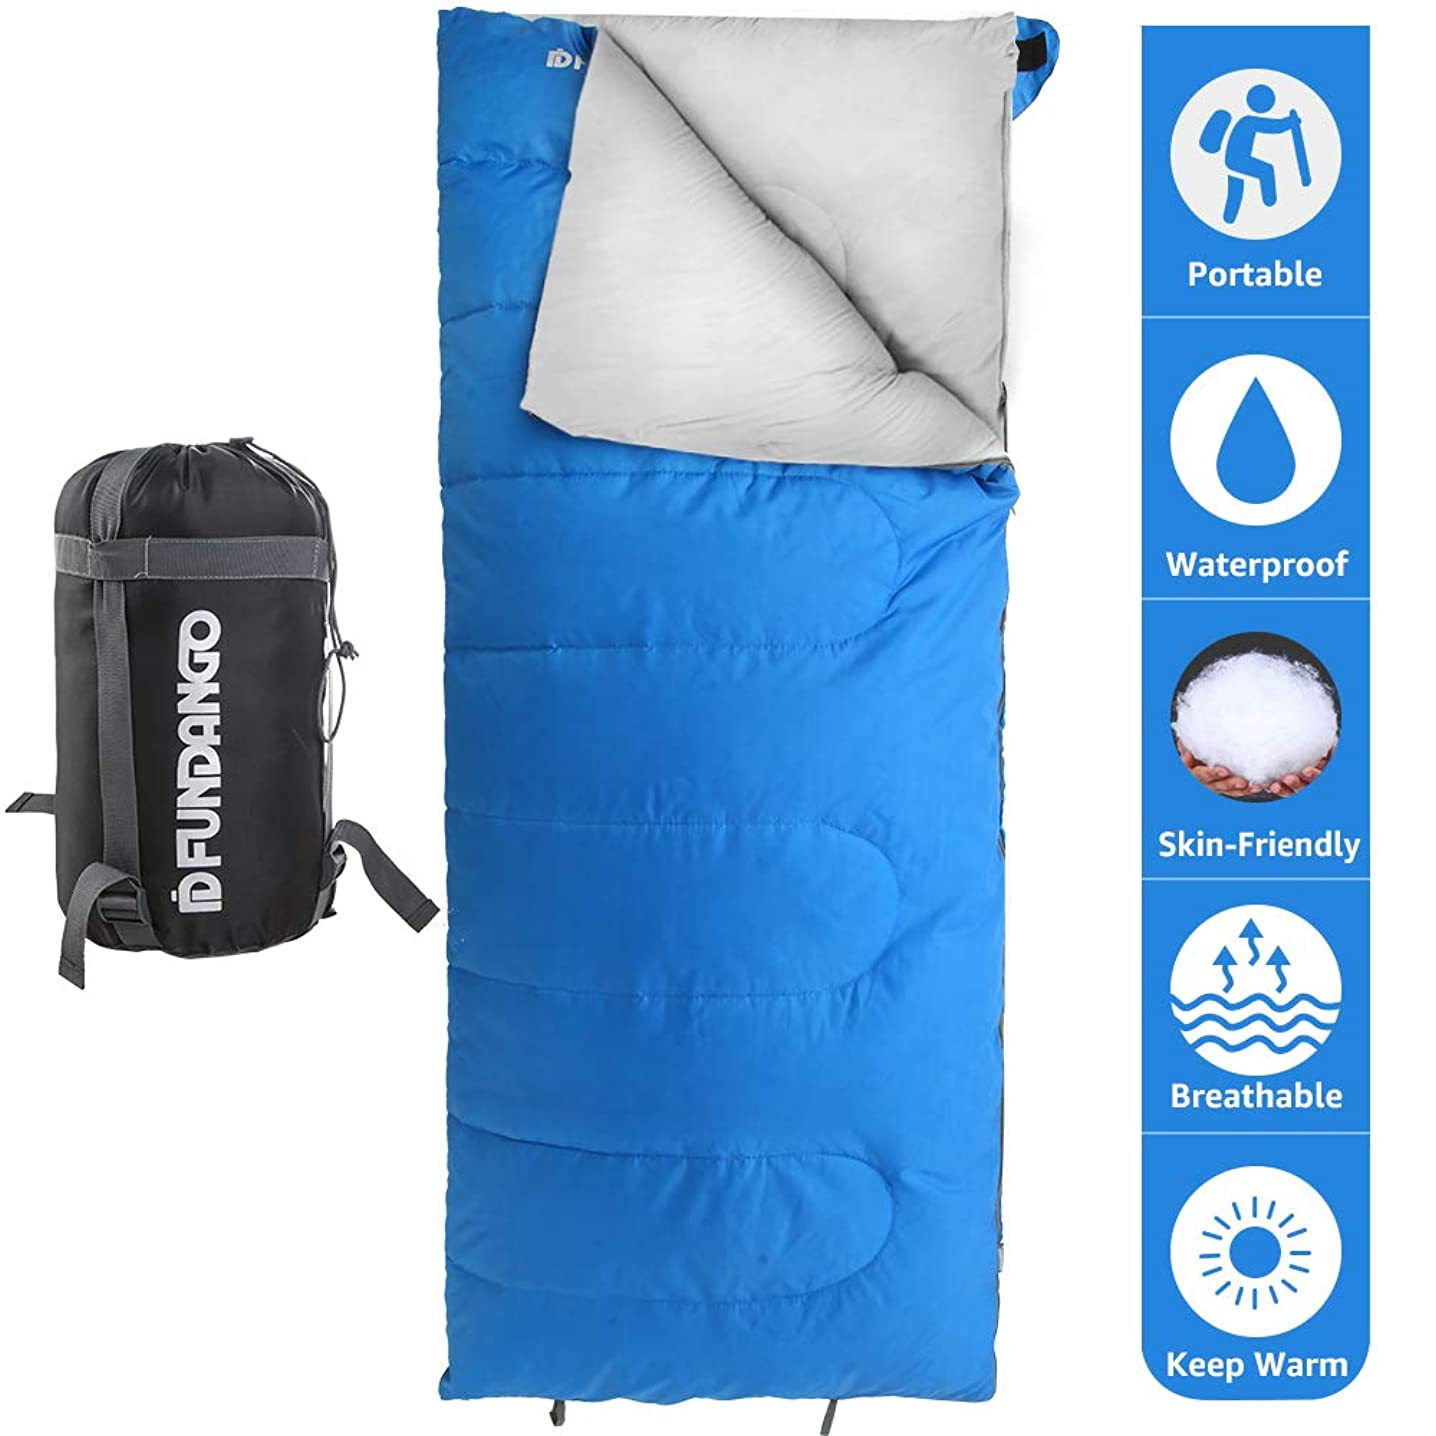 FUNDANGO Lightweight Sleeping Bag Compact Waterproof Rectangular/Envelope Cozy Portable Summer Backpacking Camping Hiking Sleeping Bags for Adults/Kids Extreme 4℃/39.2℉with Compression Bag